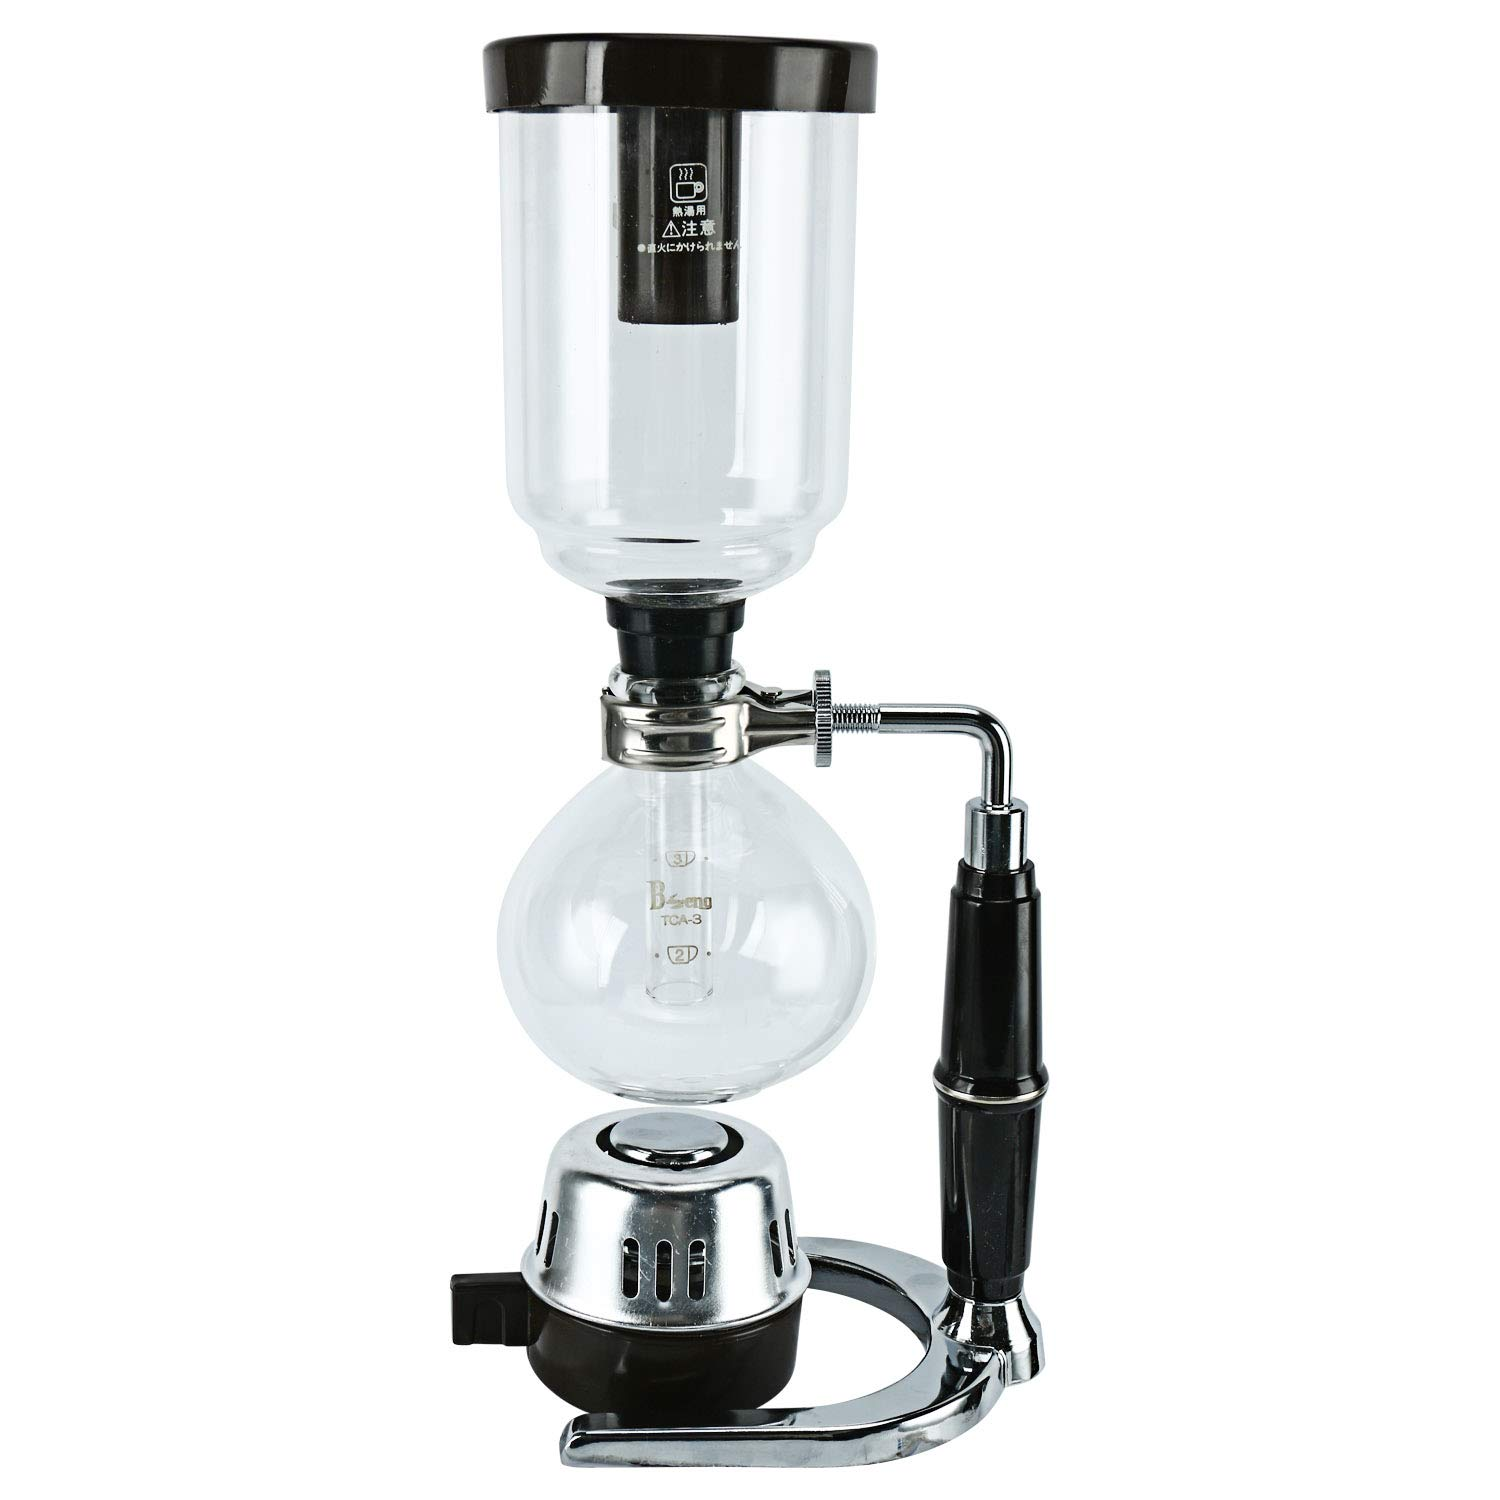 Boeng Tabletop Siphon (Syphon) Coffee Maker with